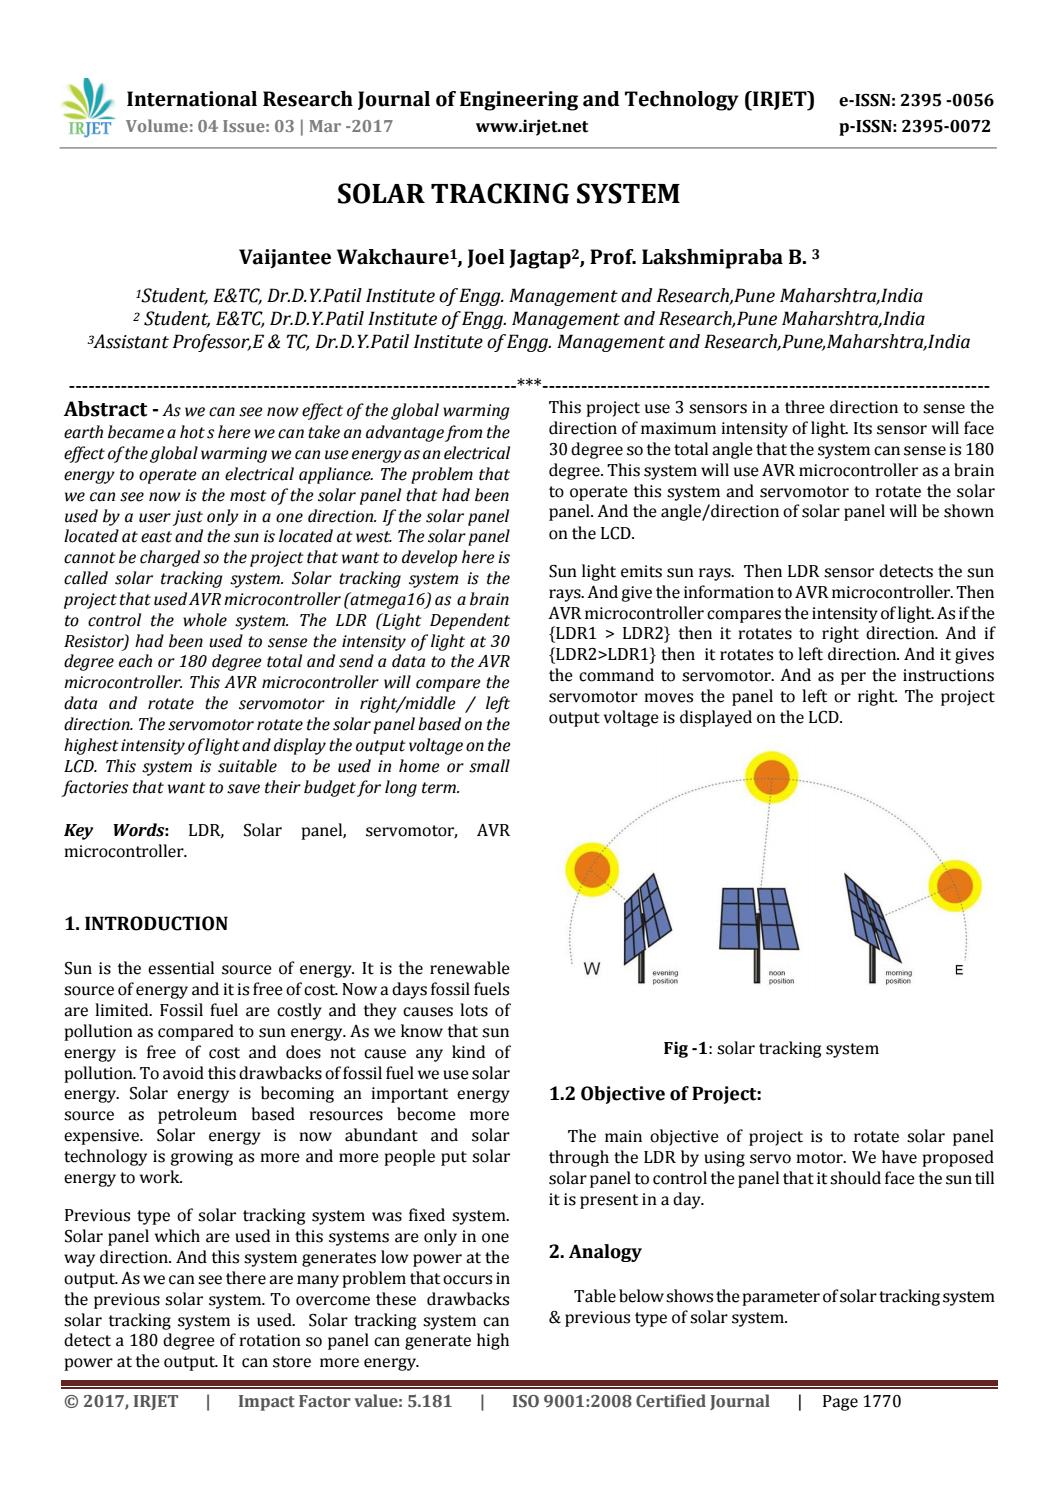 Solar Tracking System by IRJET Journal - issuu